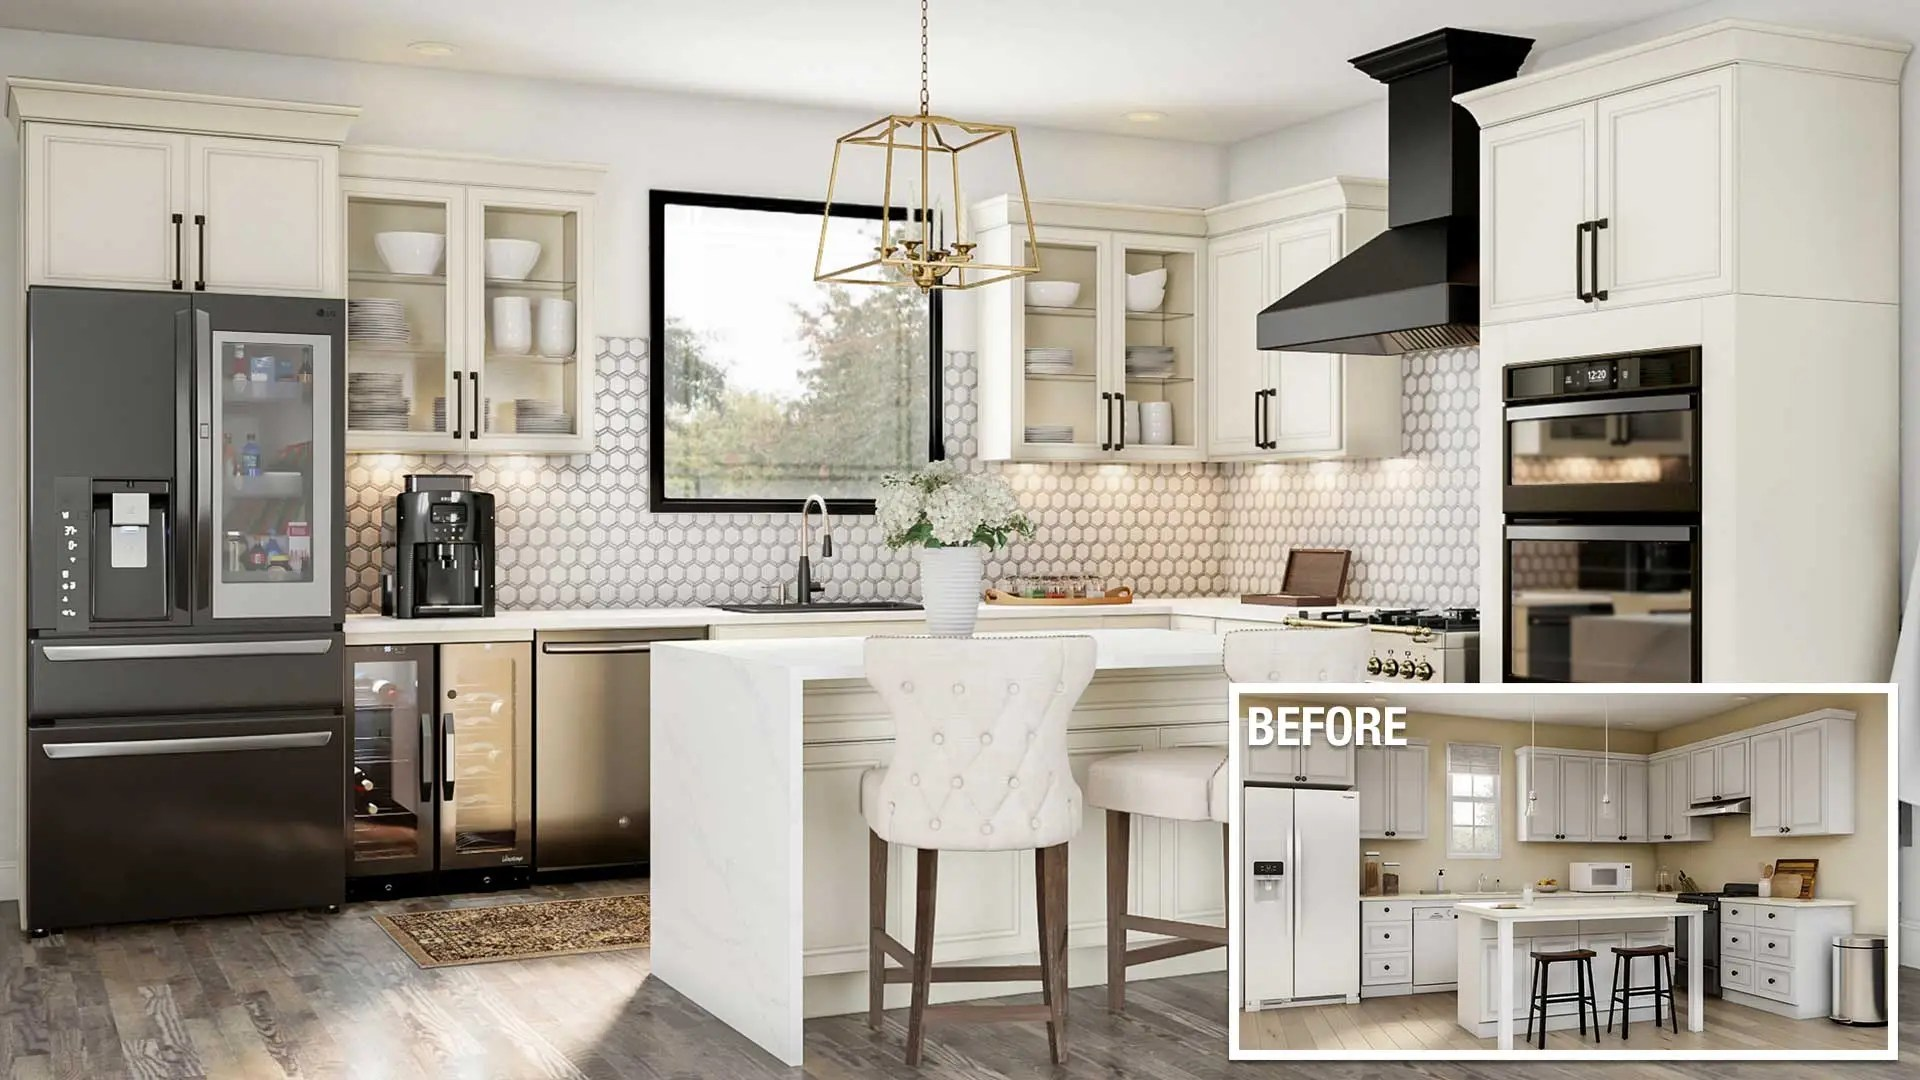 hight resolution of a before and after of an upscale kitchen remodel